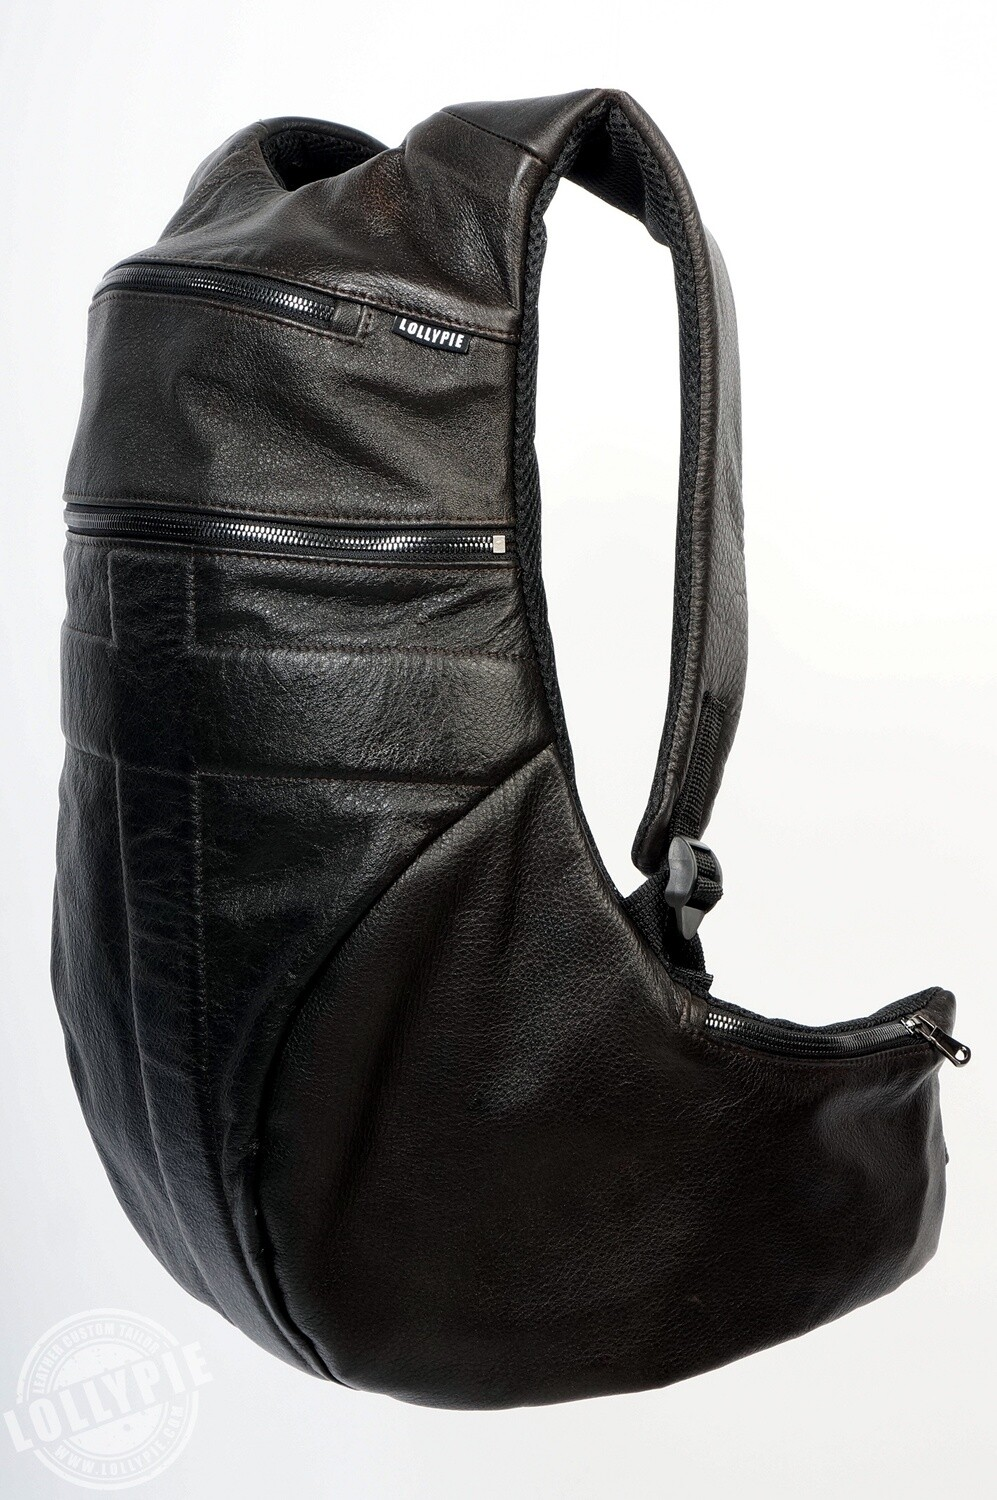 Anatomical Brown Genuine Leather Backpack